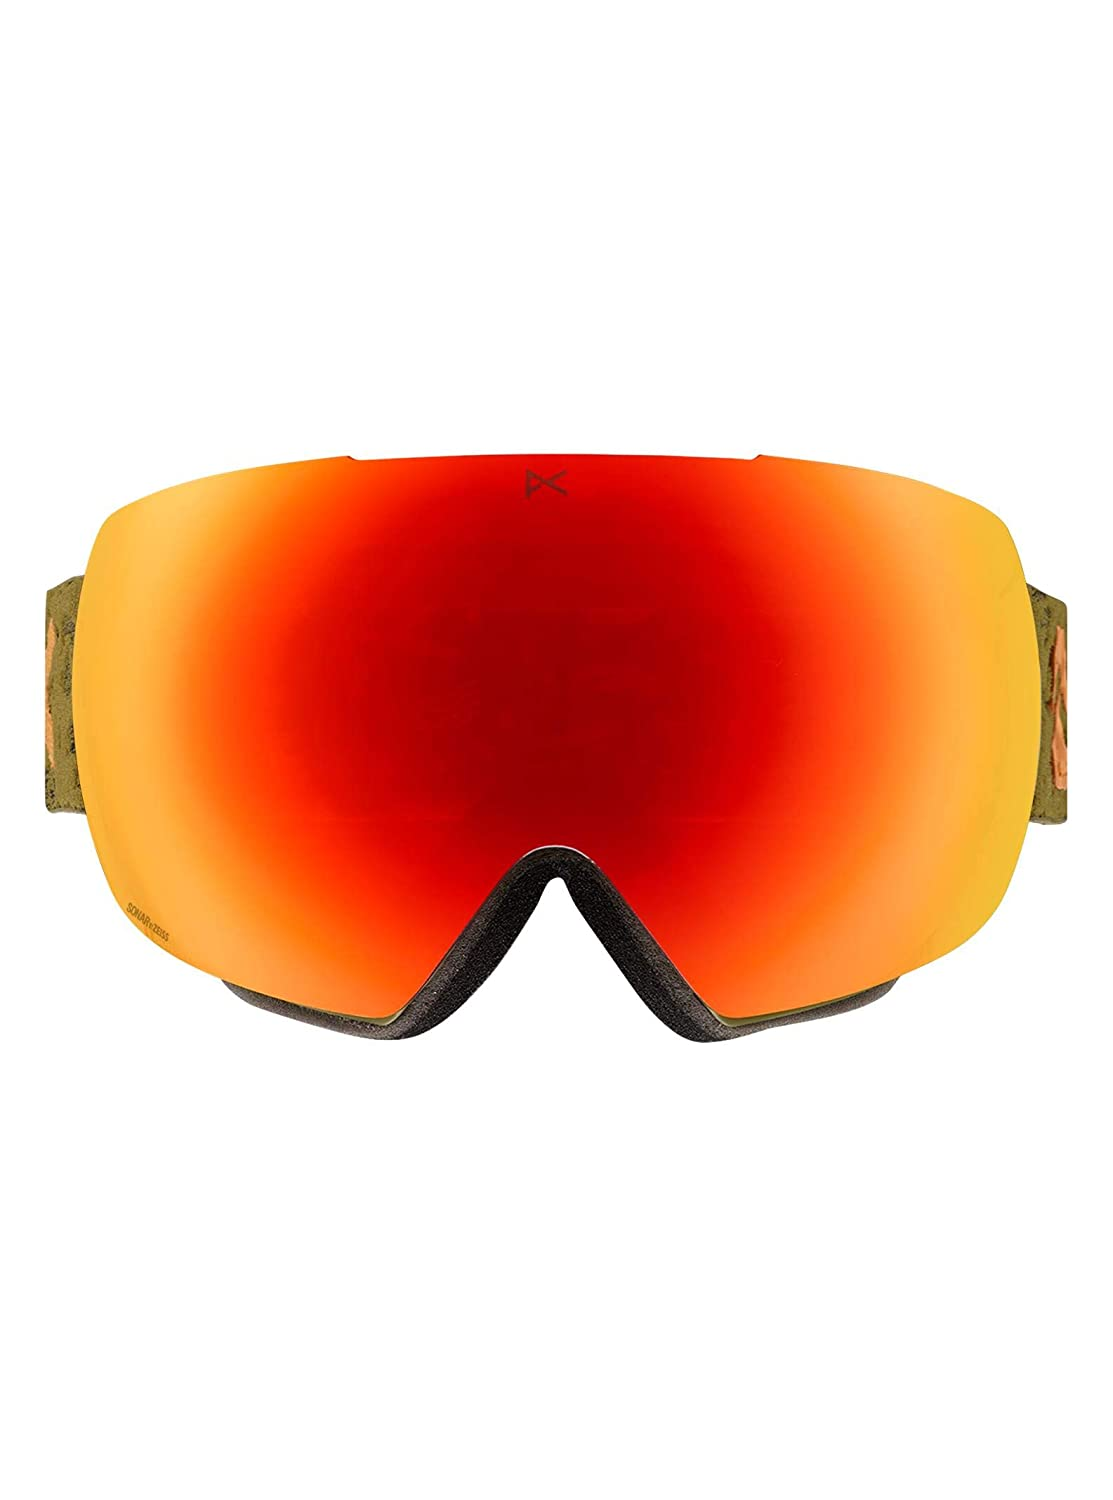 Anon Mig Goggle Available in Asian Fit